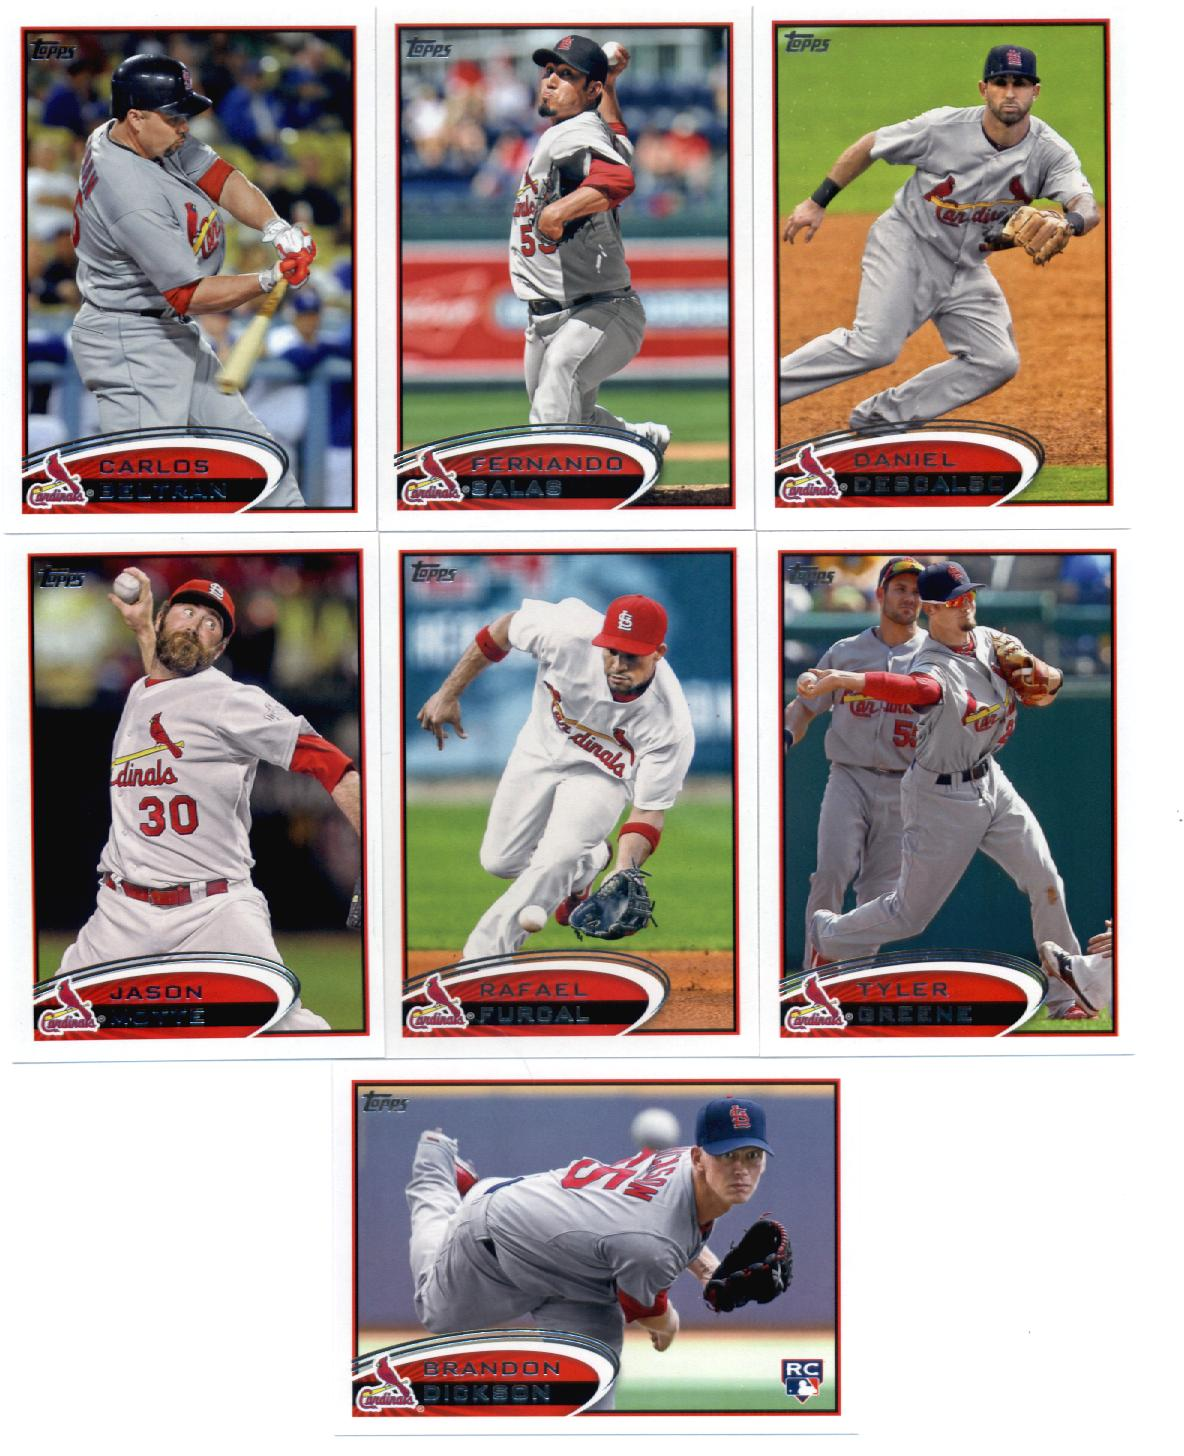 Topps Update 2012 Topps St. Louis Cardinals Update Series Team Set -14 Cards- Mujica,Freese,Furcal,Lynn,Westbrook,Beltran,Boggs,Fuentes at Sears.com